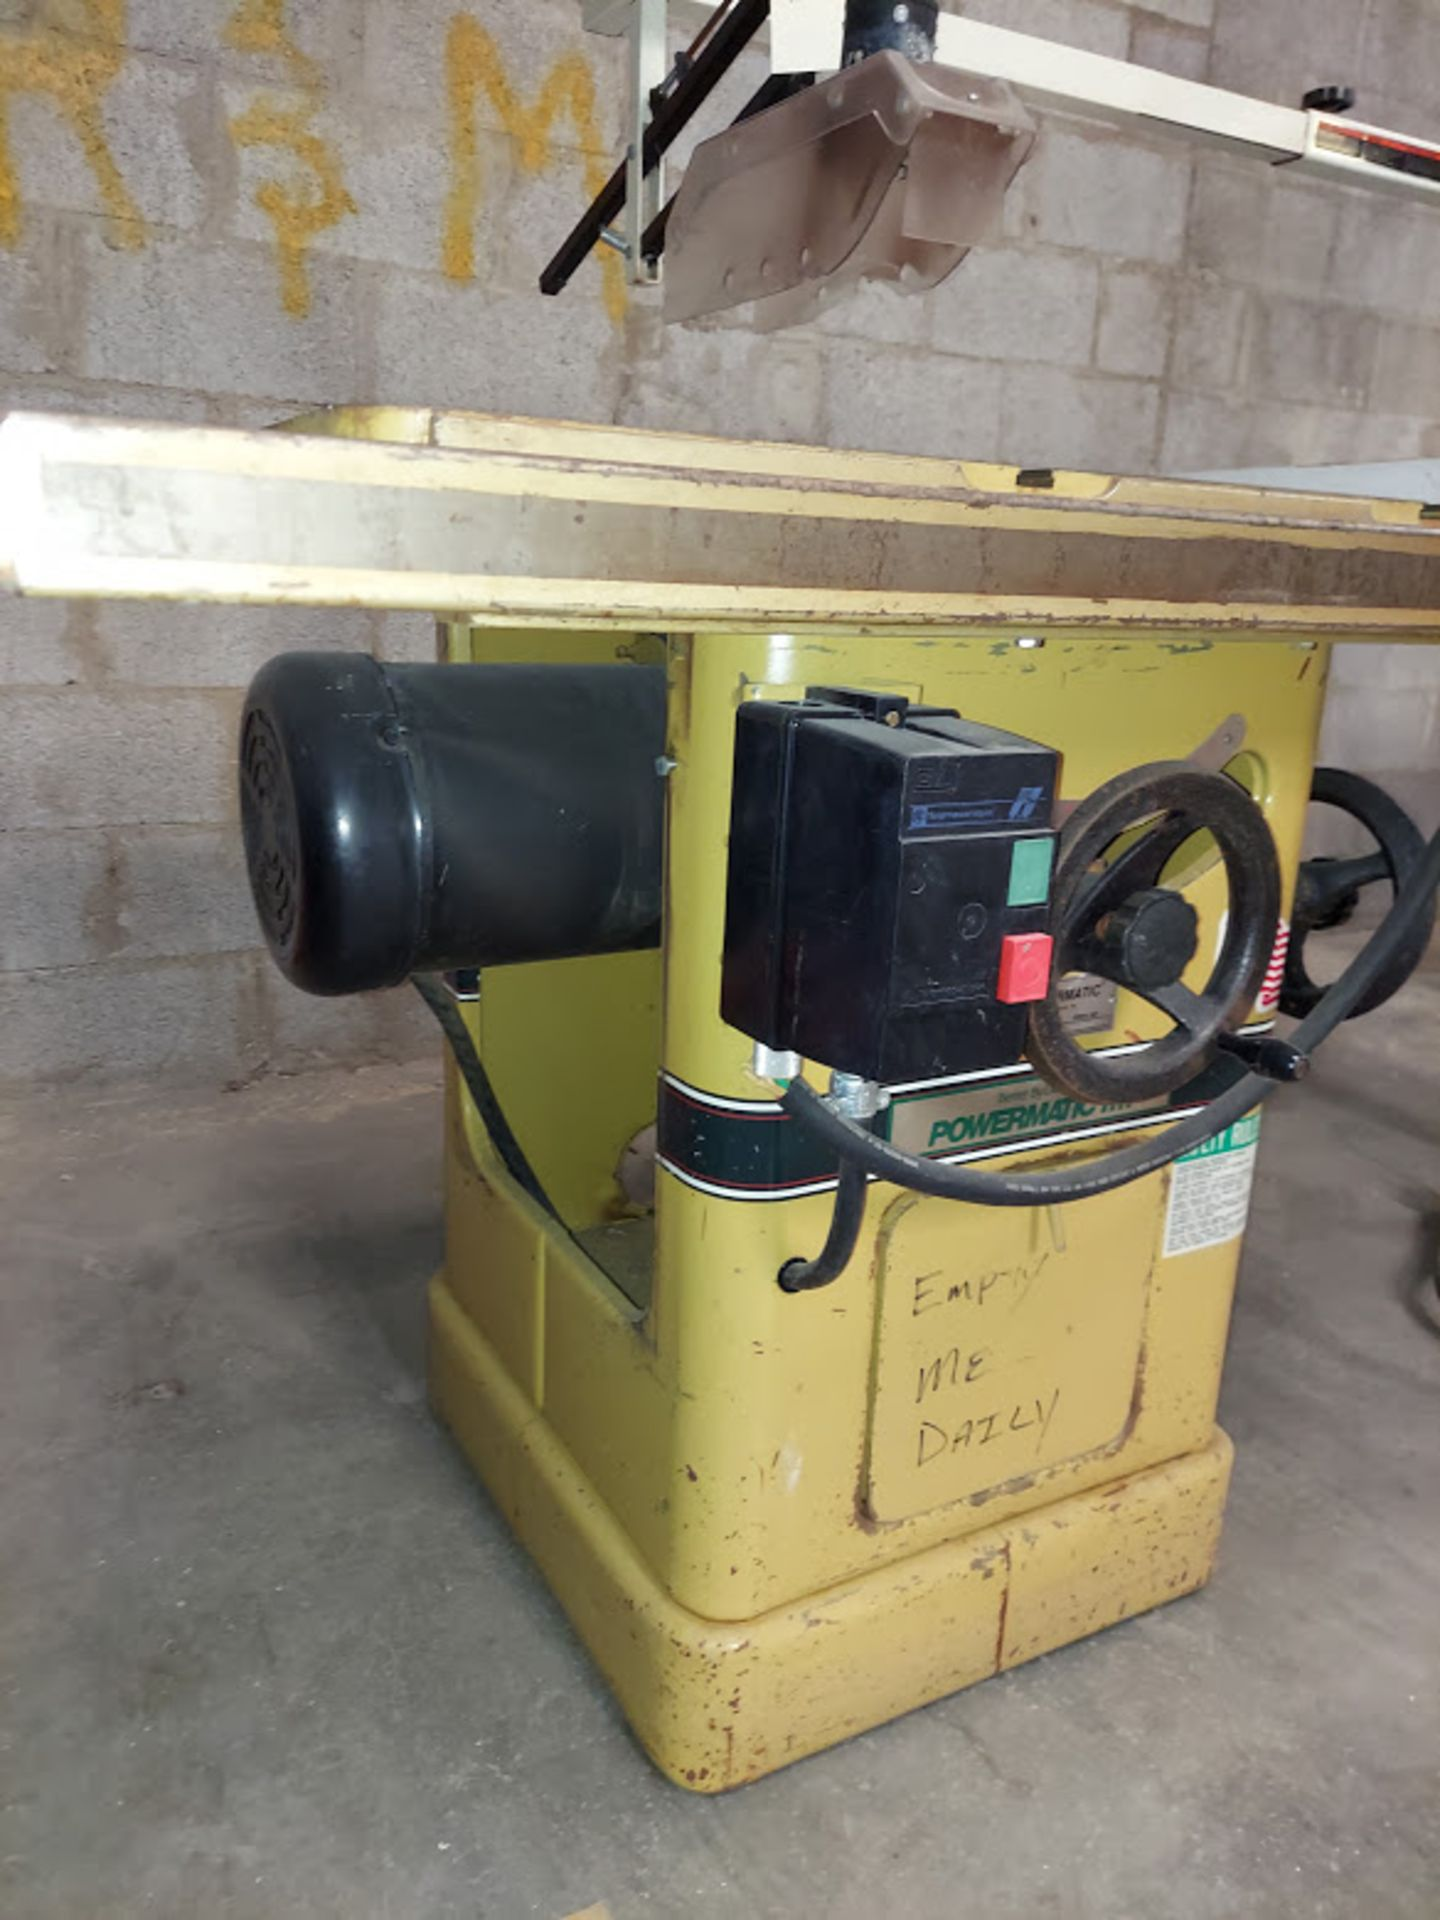 """Powermatic 10"""" Table Saw, Model #66 53"""" Rails & Fence, Baldor 5HP 230 Volts 3 Phase Motor, - Image 4 of 5"""